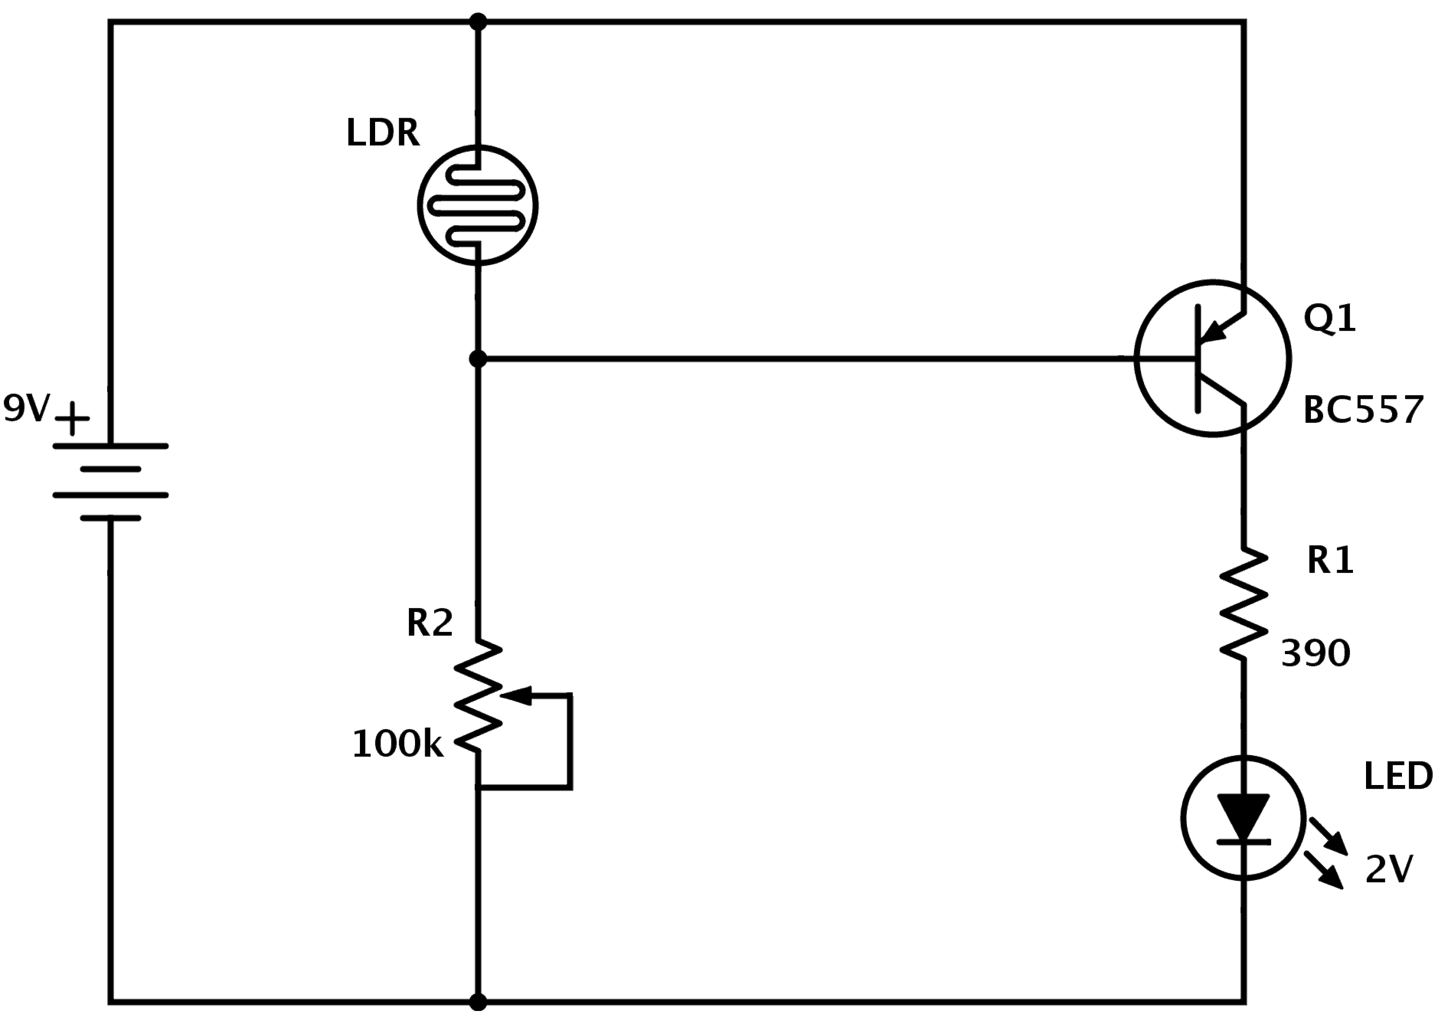 Ldr Circuit Diagram Build Electronic Circuits Led Ke Light Turn Signal Wiring With Pnp Transistor Dark Detector